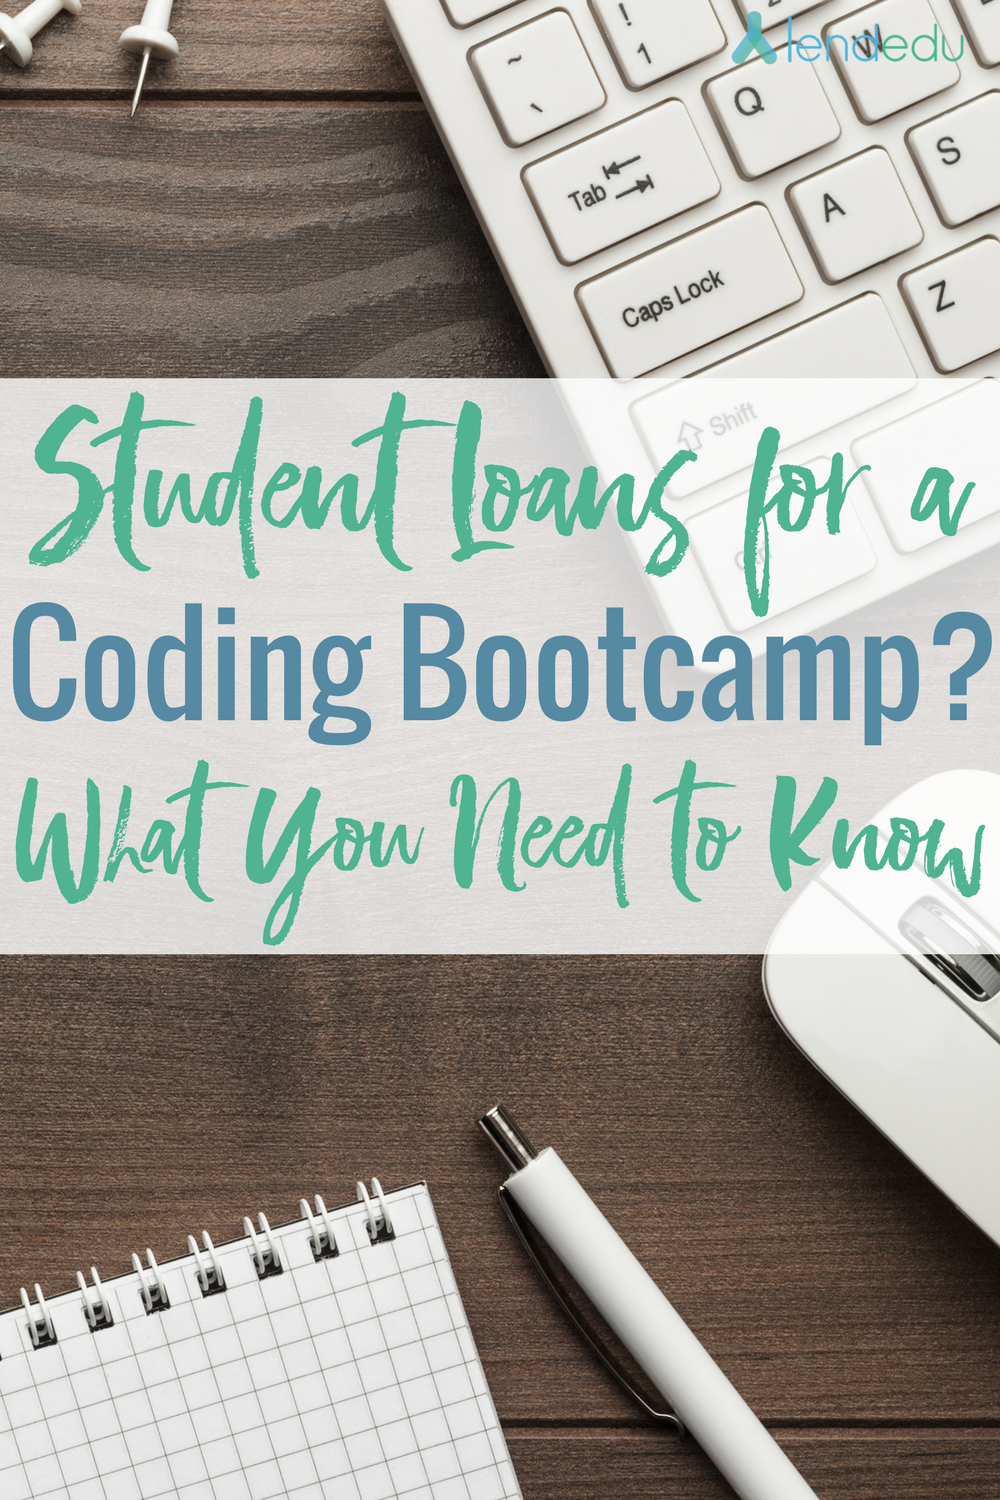 Student Loans for Coding Bootcamp | Best of LendEDU